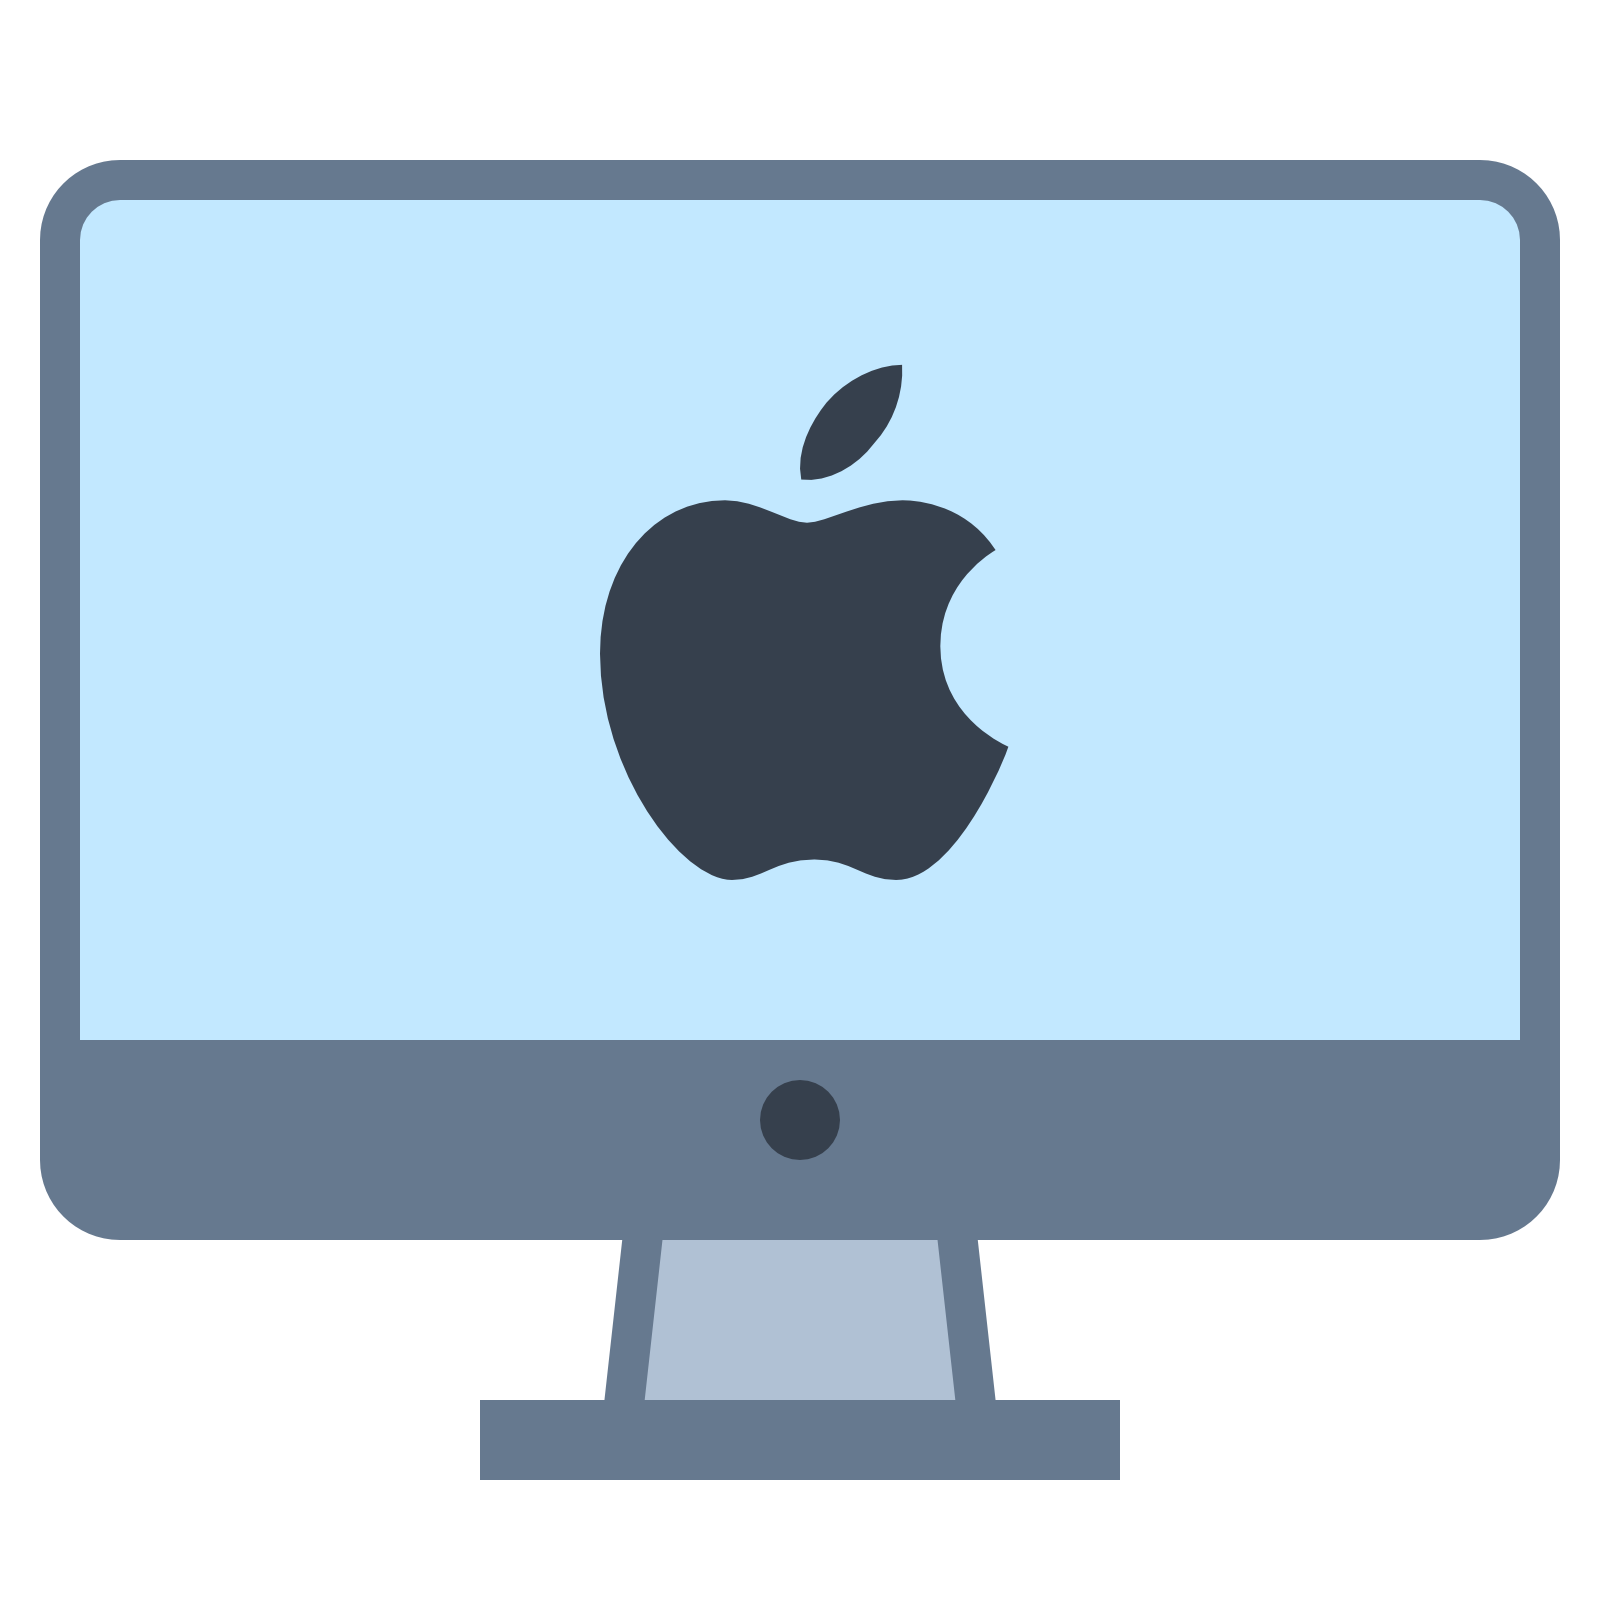 Free clipart for mac jpg library stock Apple Mac Clipart | Free download best Apple Mac Clipart on ... jpg library stock